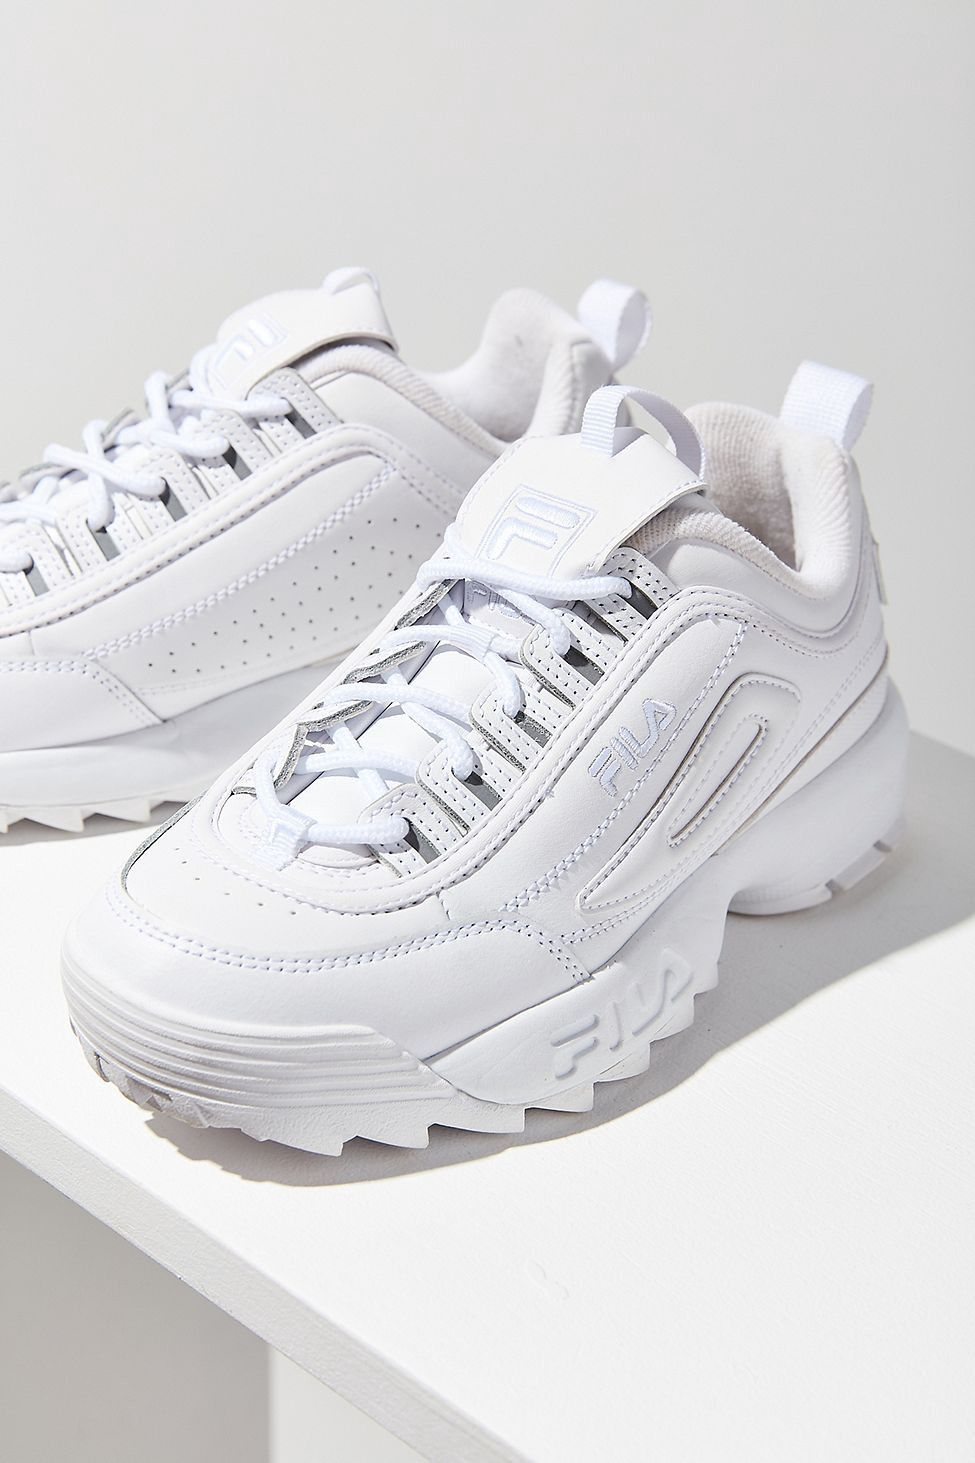 Fila DISRUPTOR Trainers white Men Shoes latest fashion